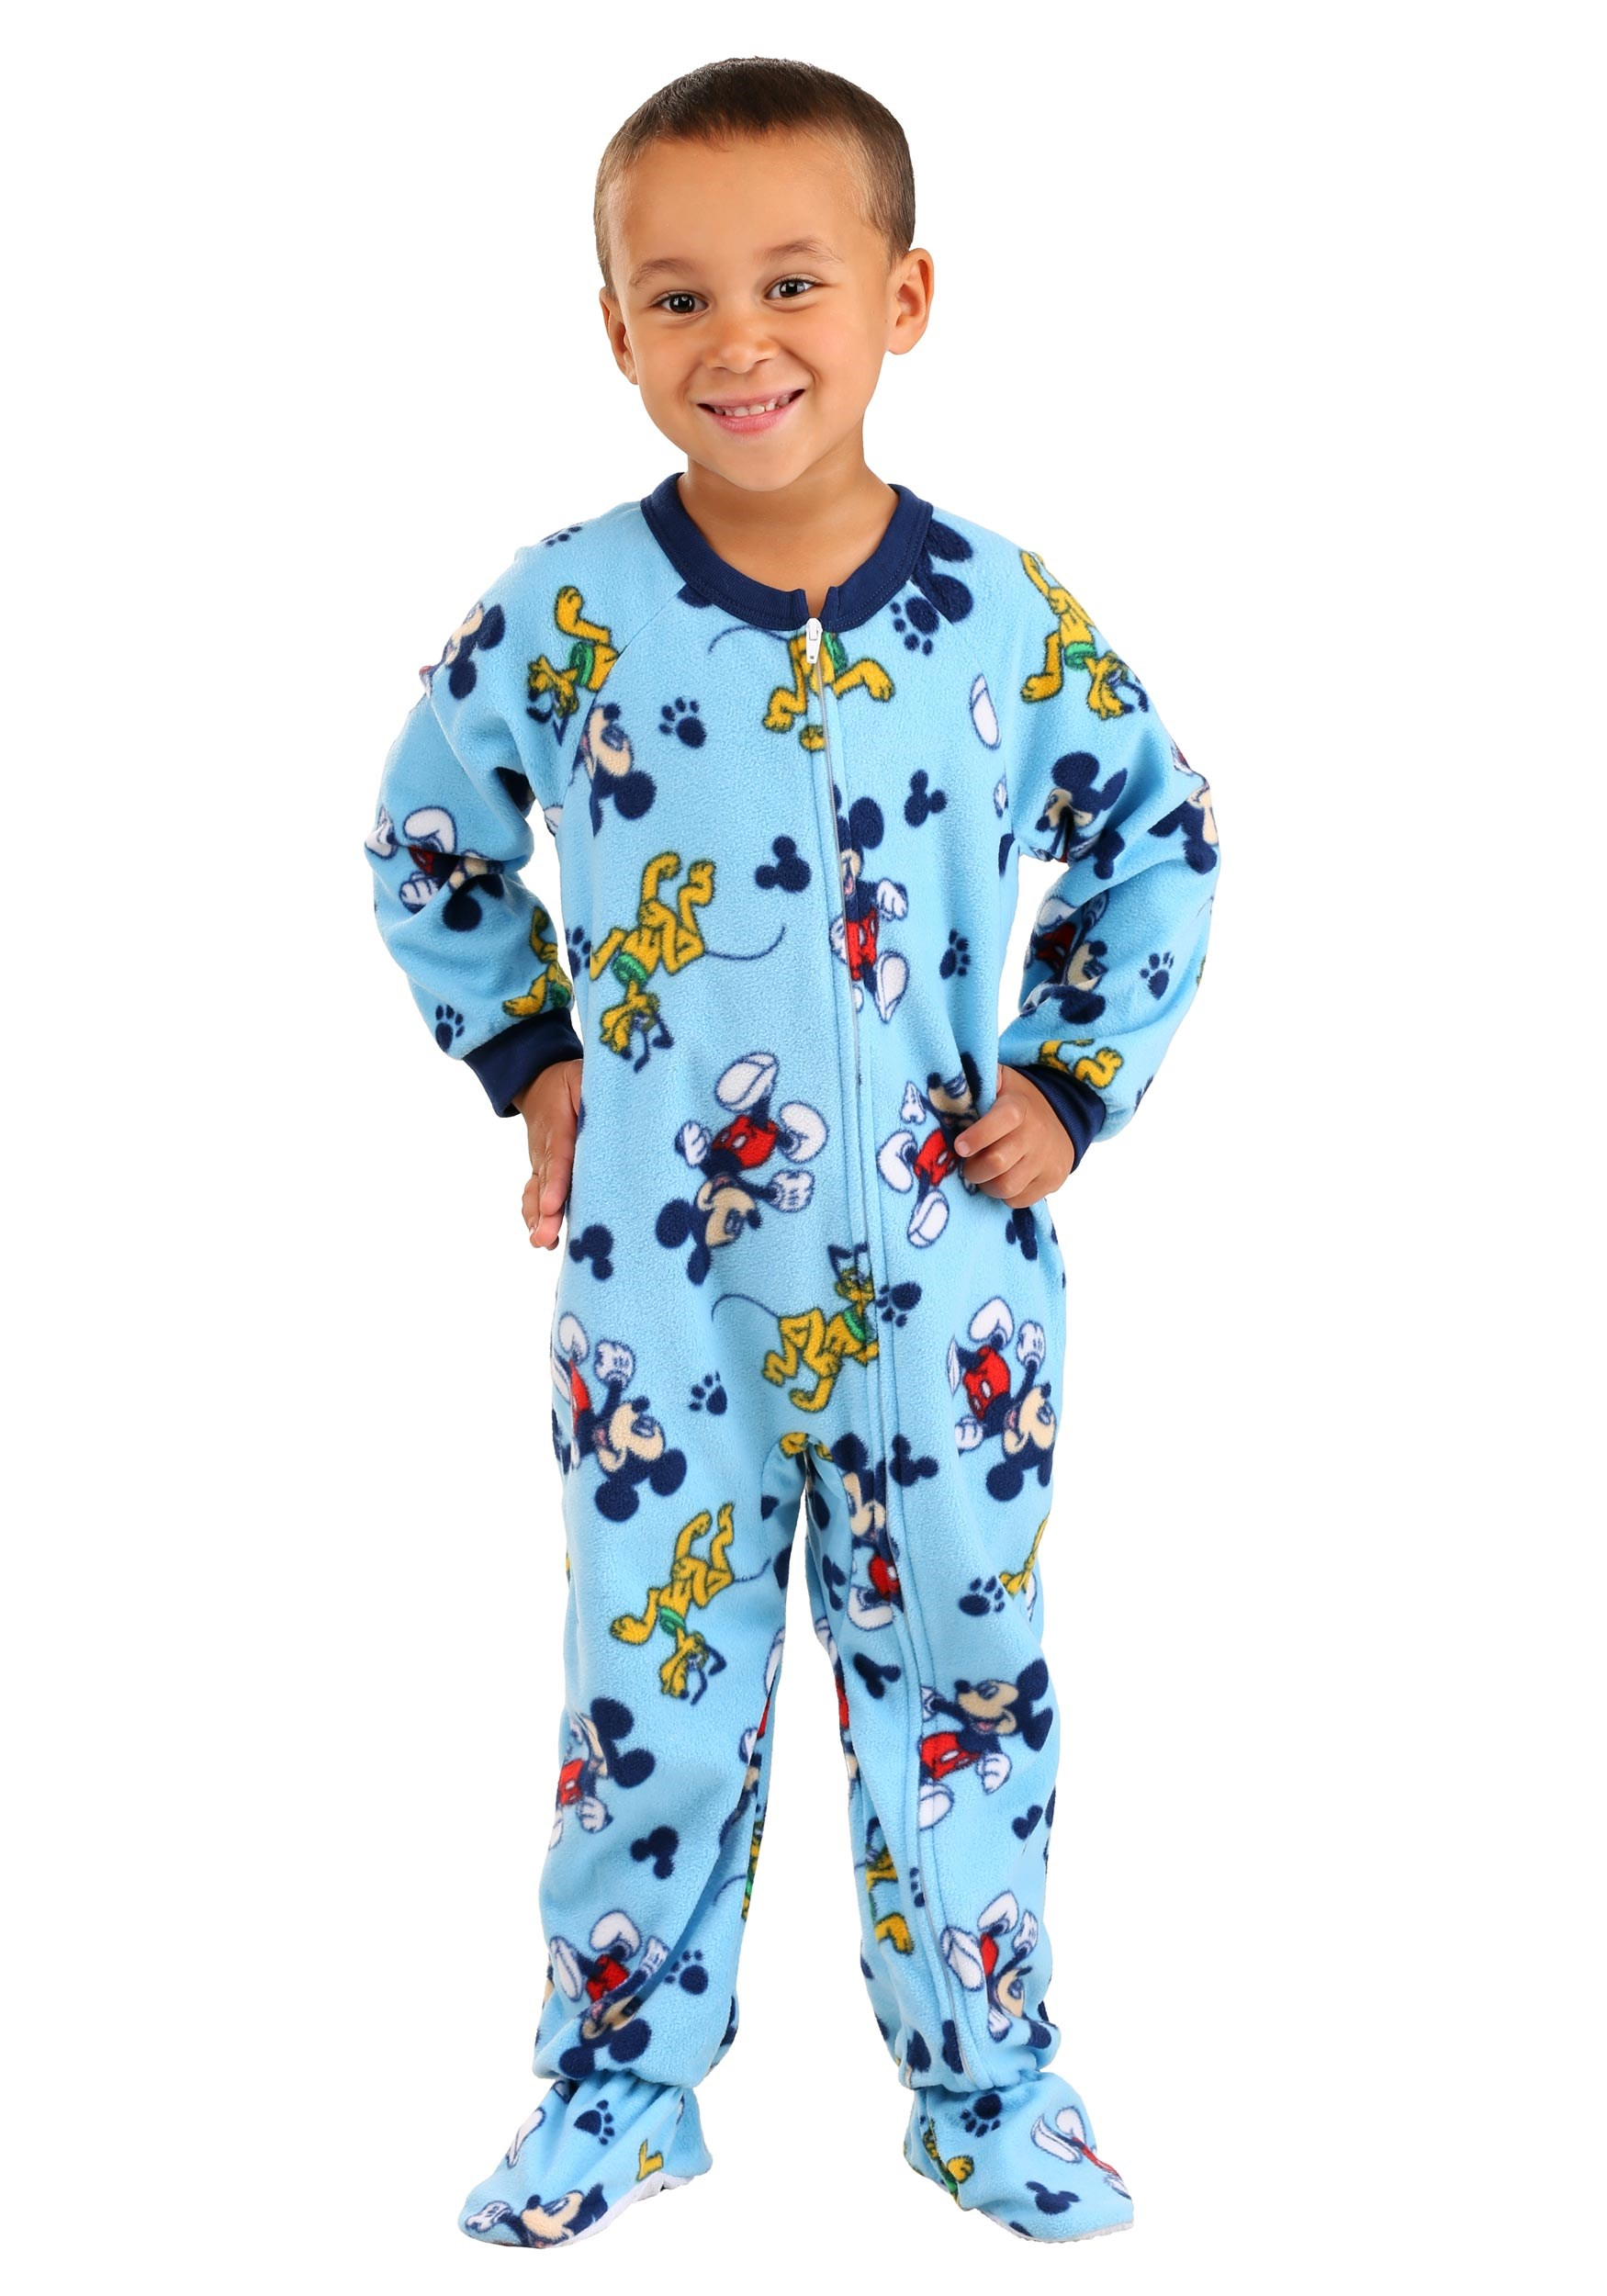 Blue Mickey and Pluto Allover Print Toddler Onesie